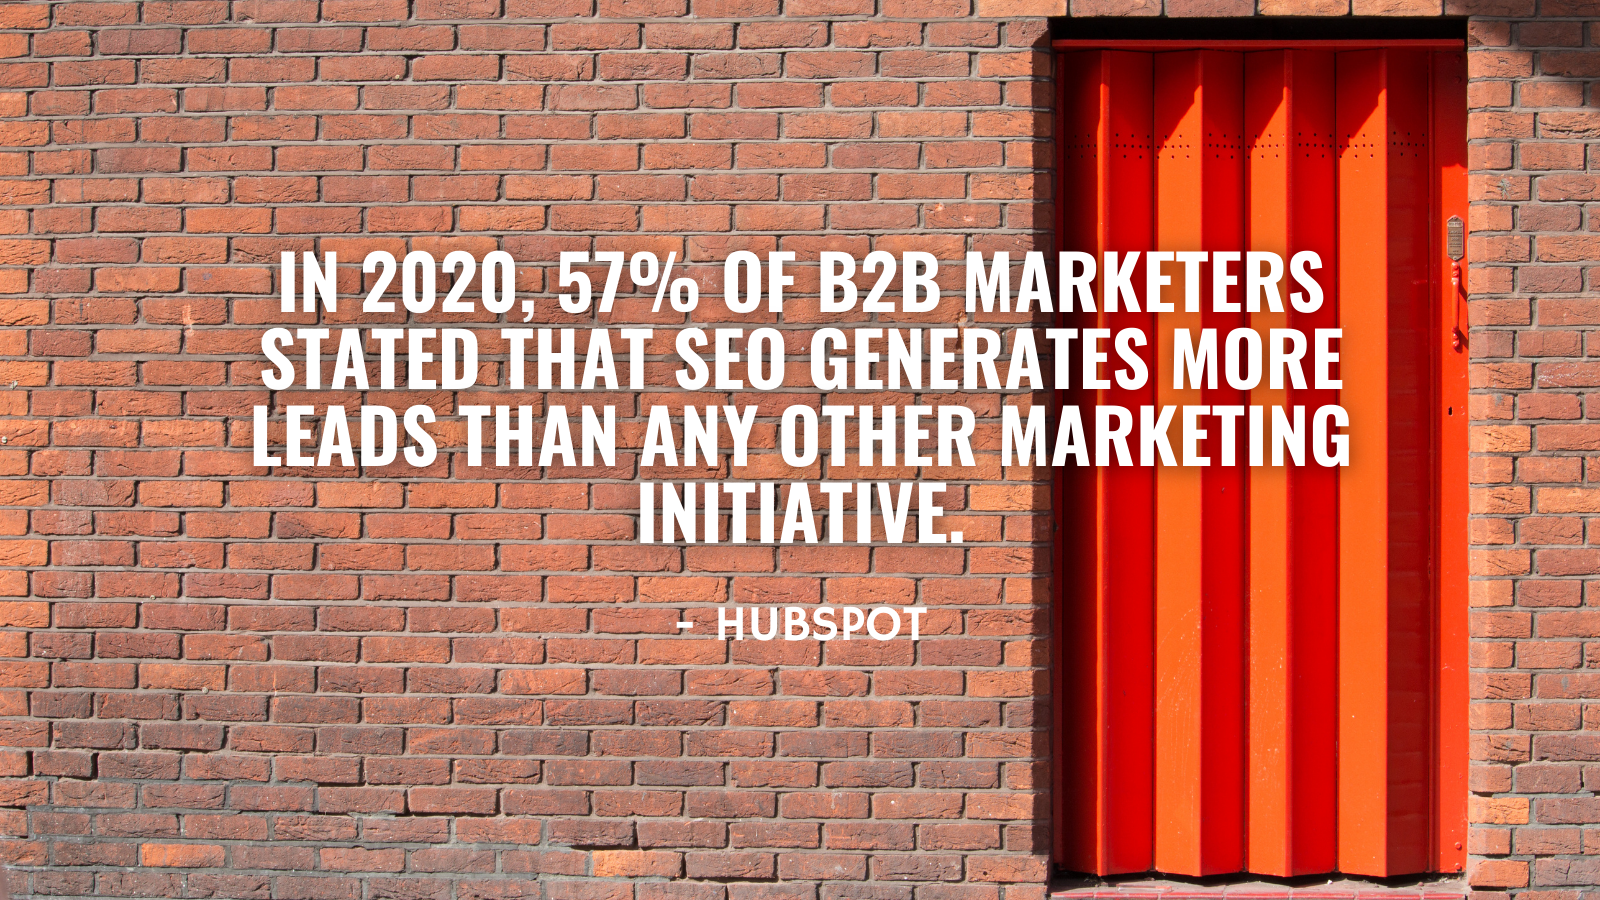 2020 hubspot 57% b2b marketers stated seo generates more leads than any other marketing